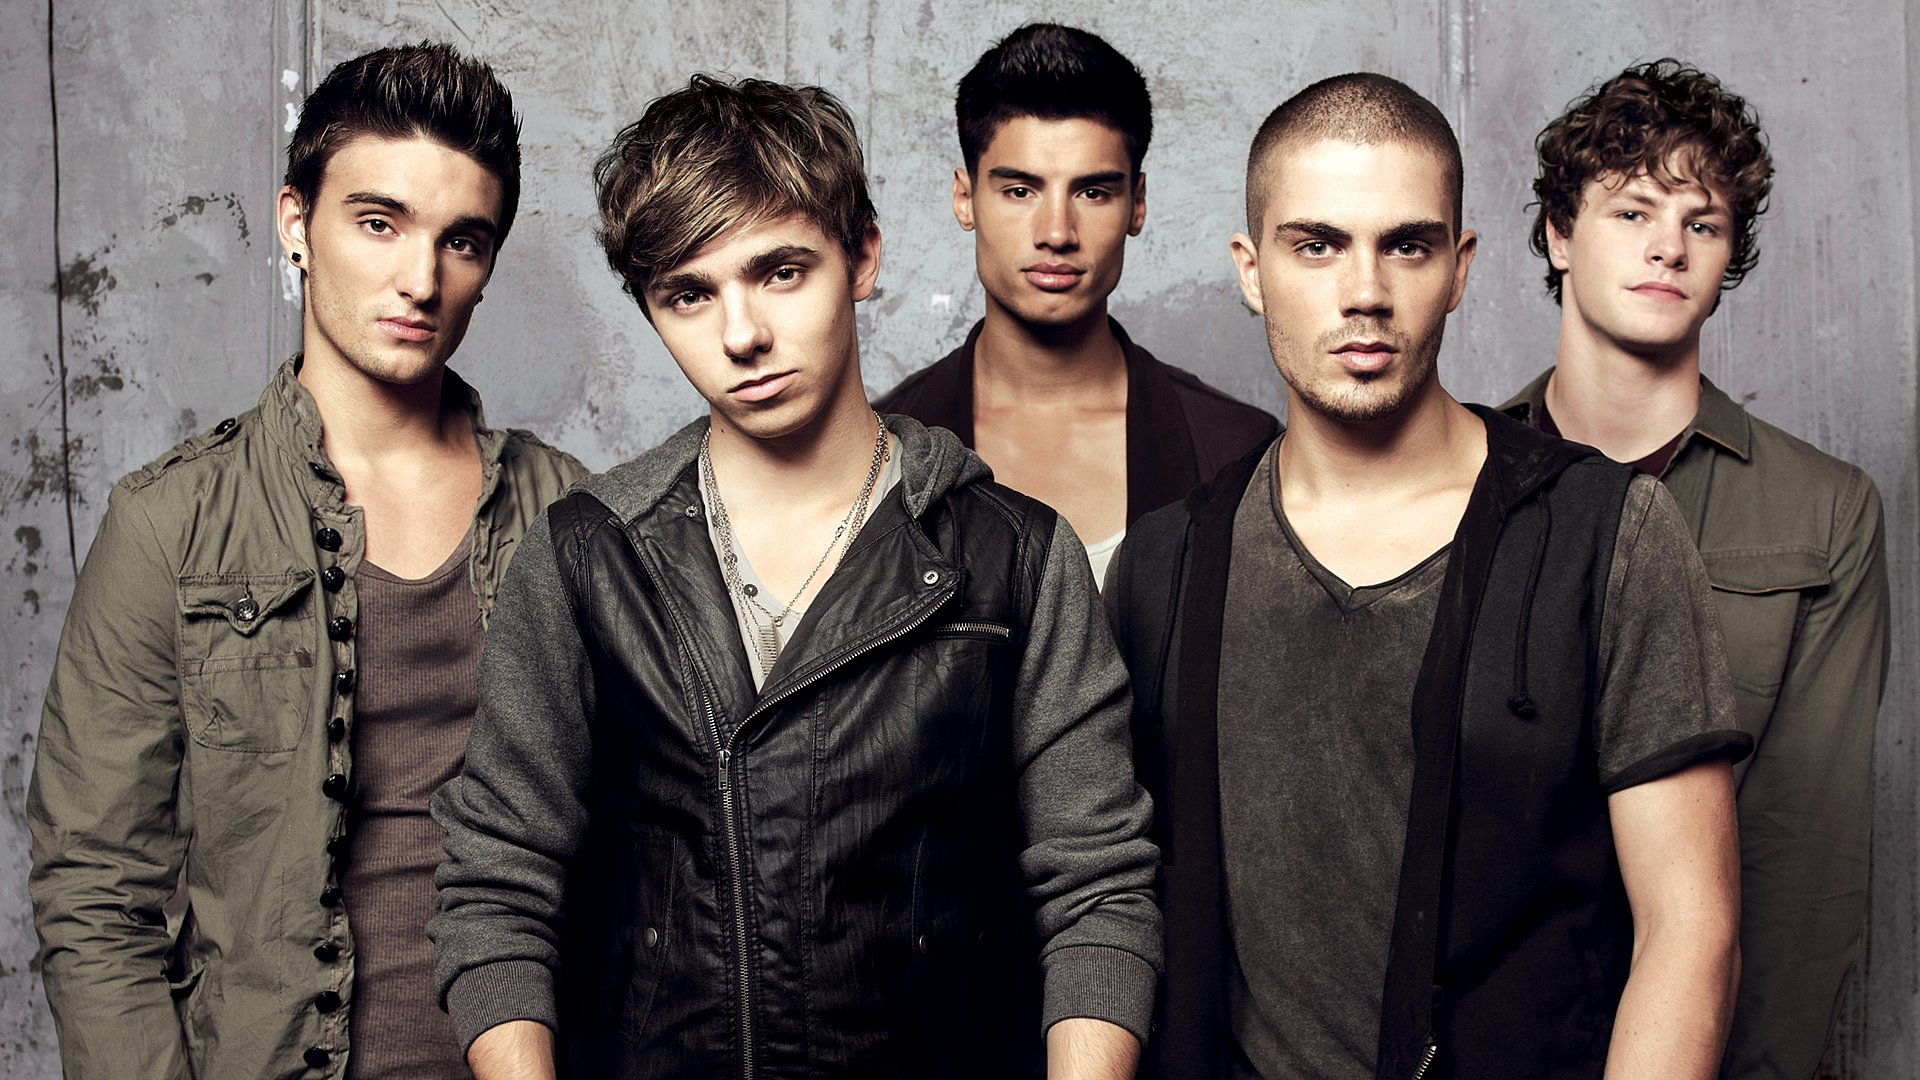 The Wanted xx The Wanted Wallpaper Fanpop